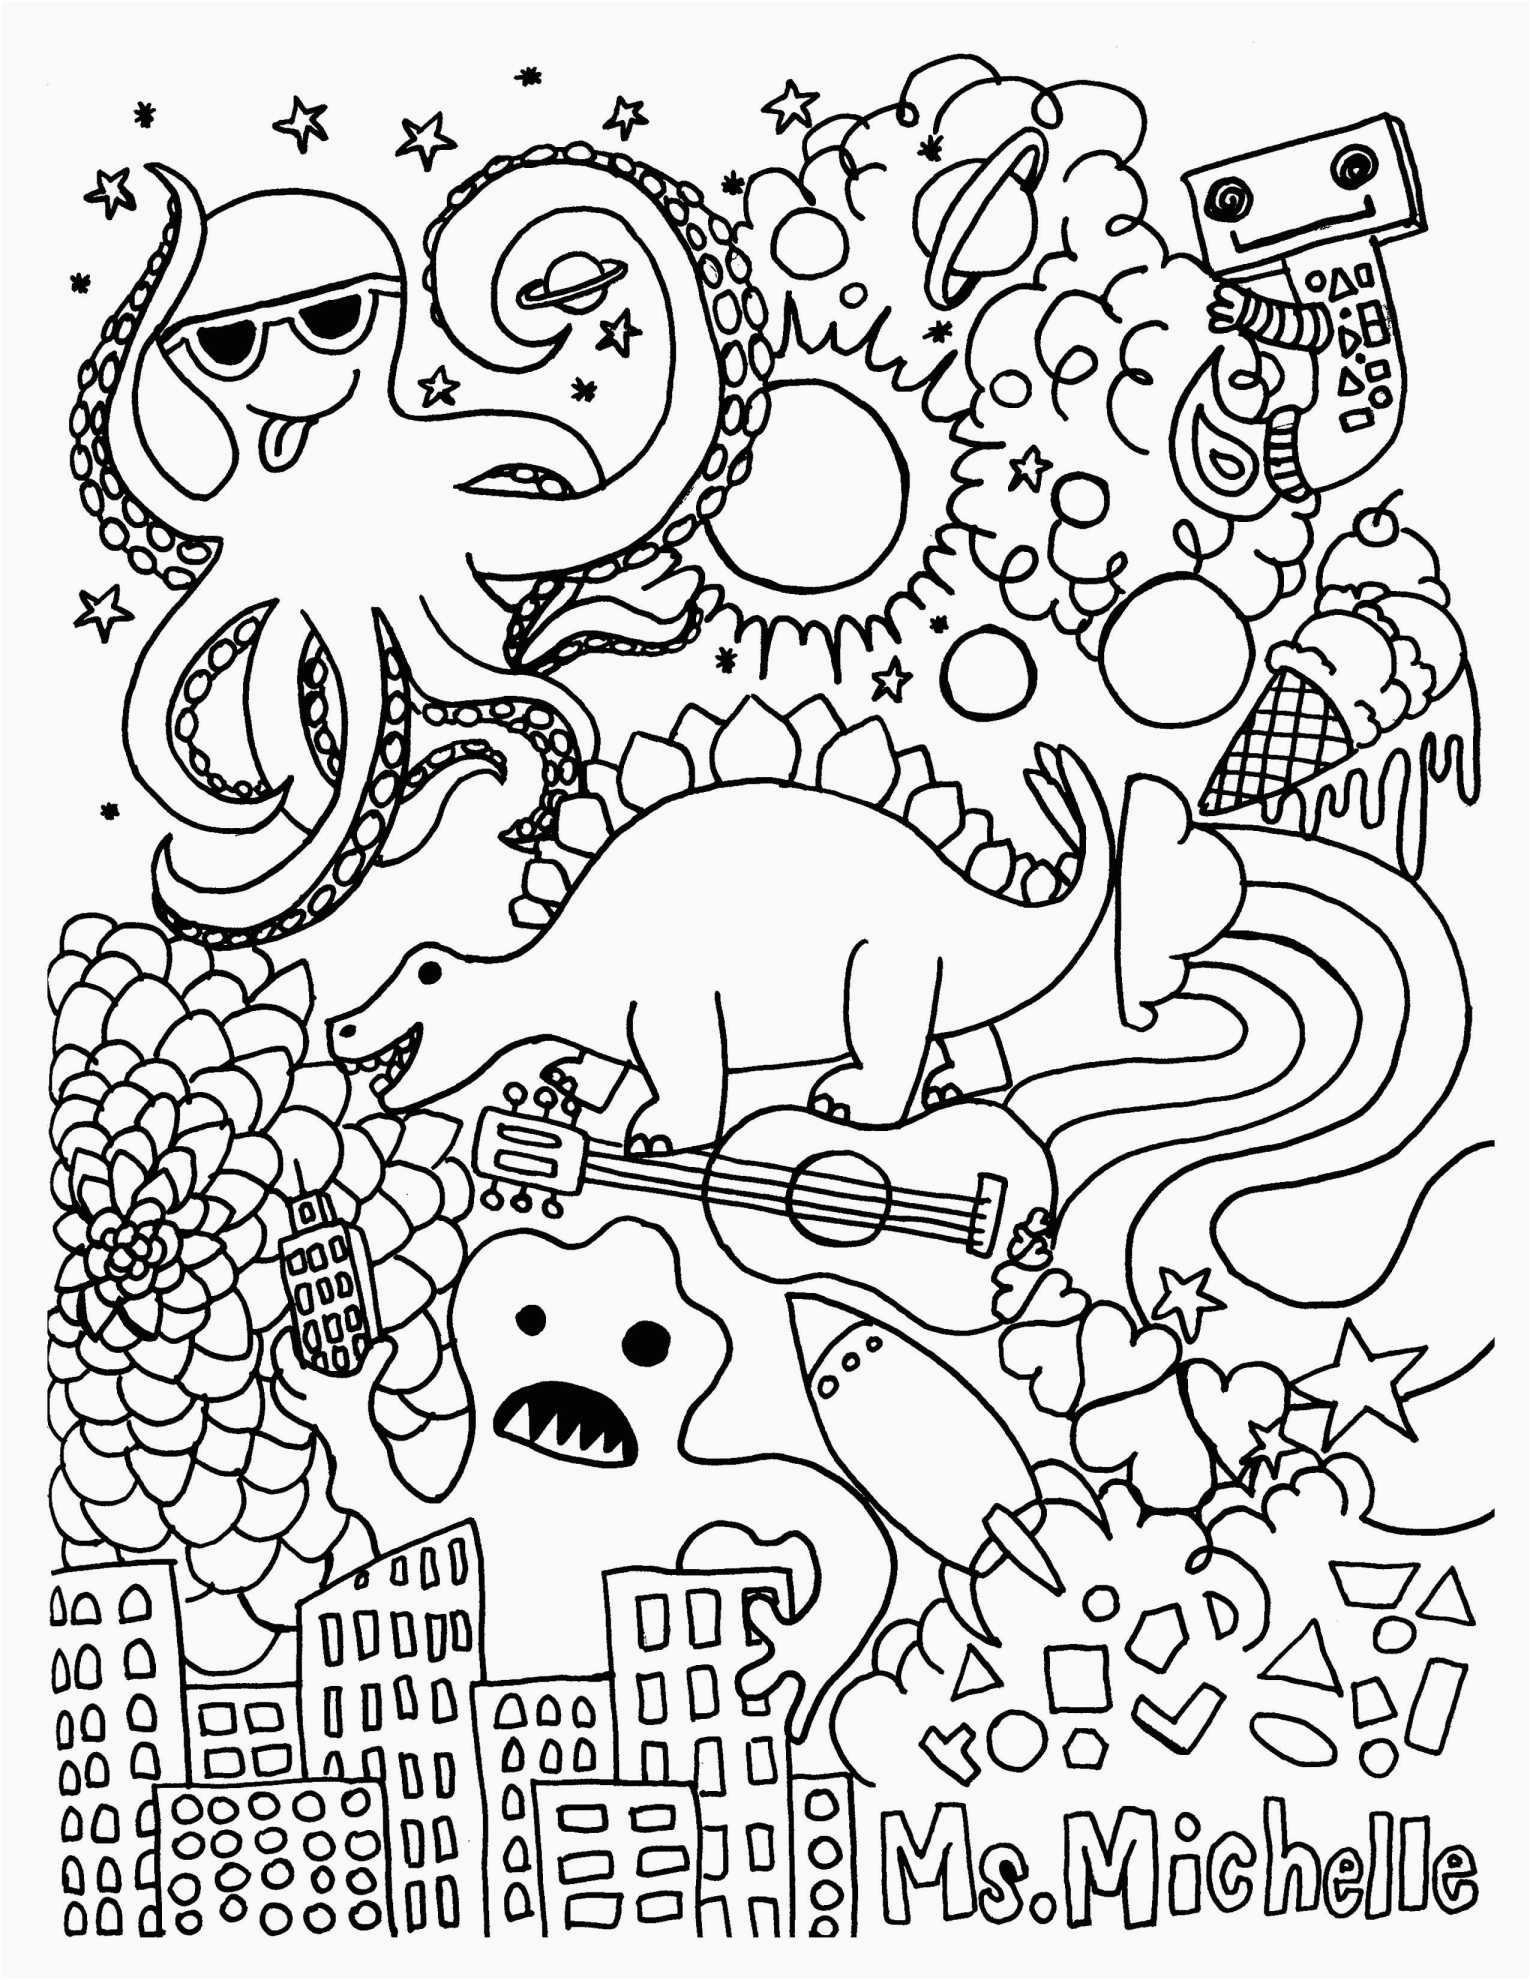 valentine day coloring pages Download-Coloring Book for Kids Download Dice Coloring Pages Kids Coloring Line Lovely Hair Coloring Pages Free 13-i